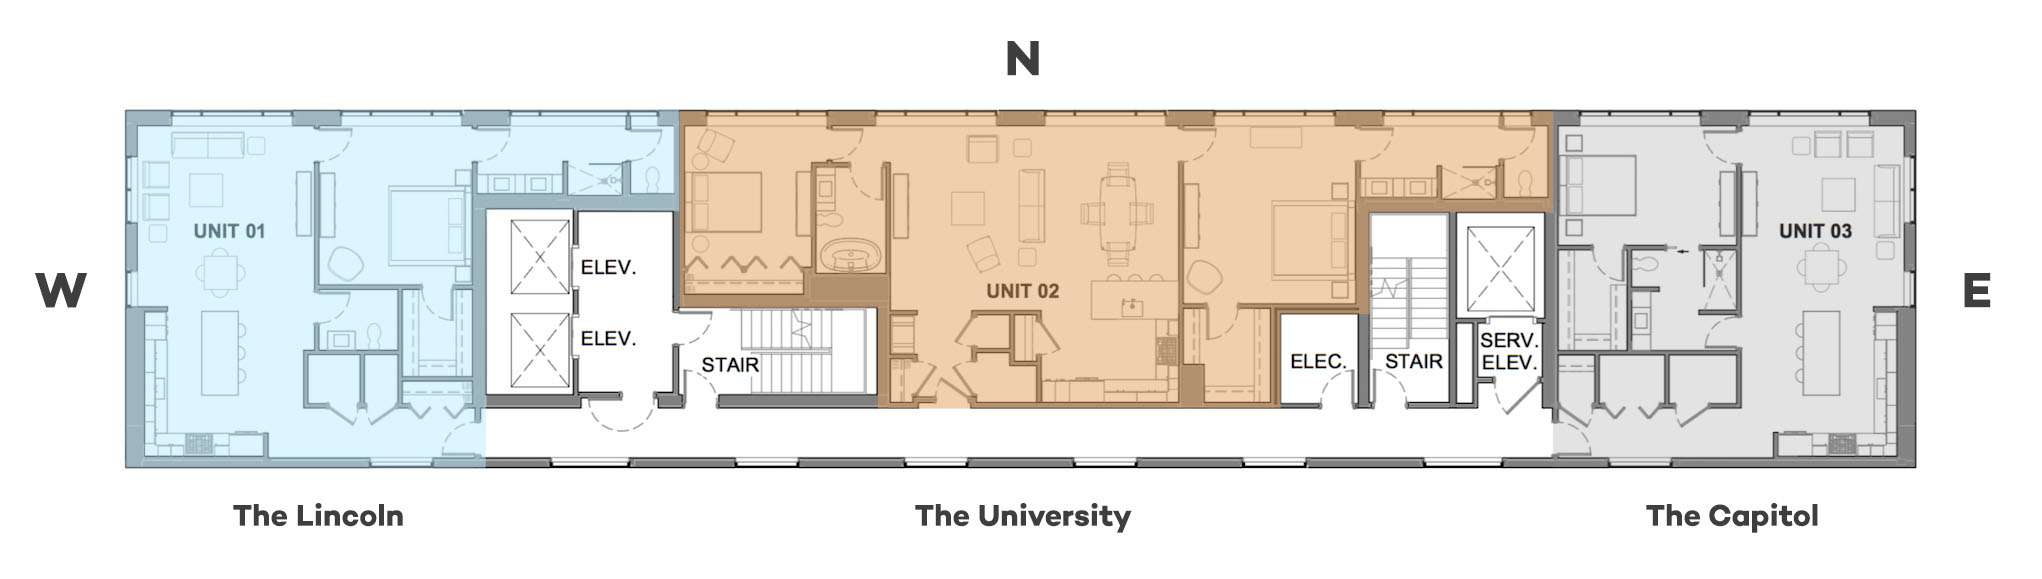 the layout of the three units at Lied Place Residences